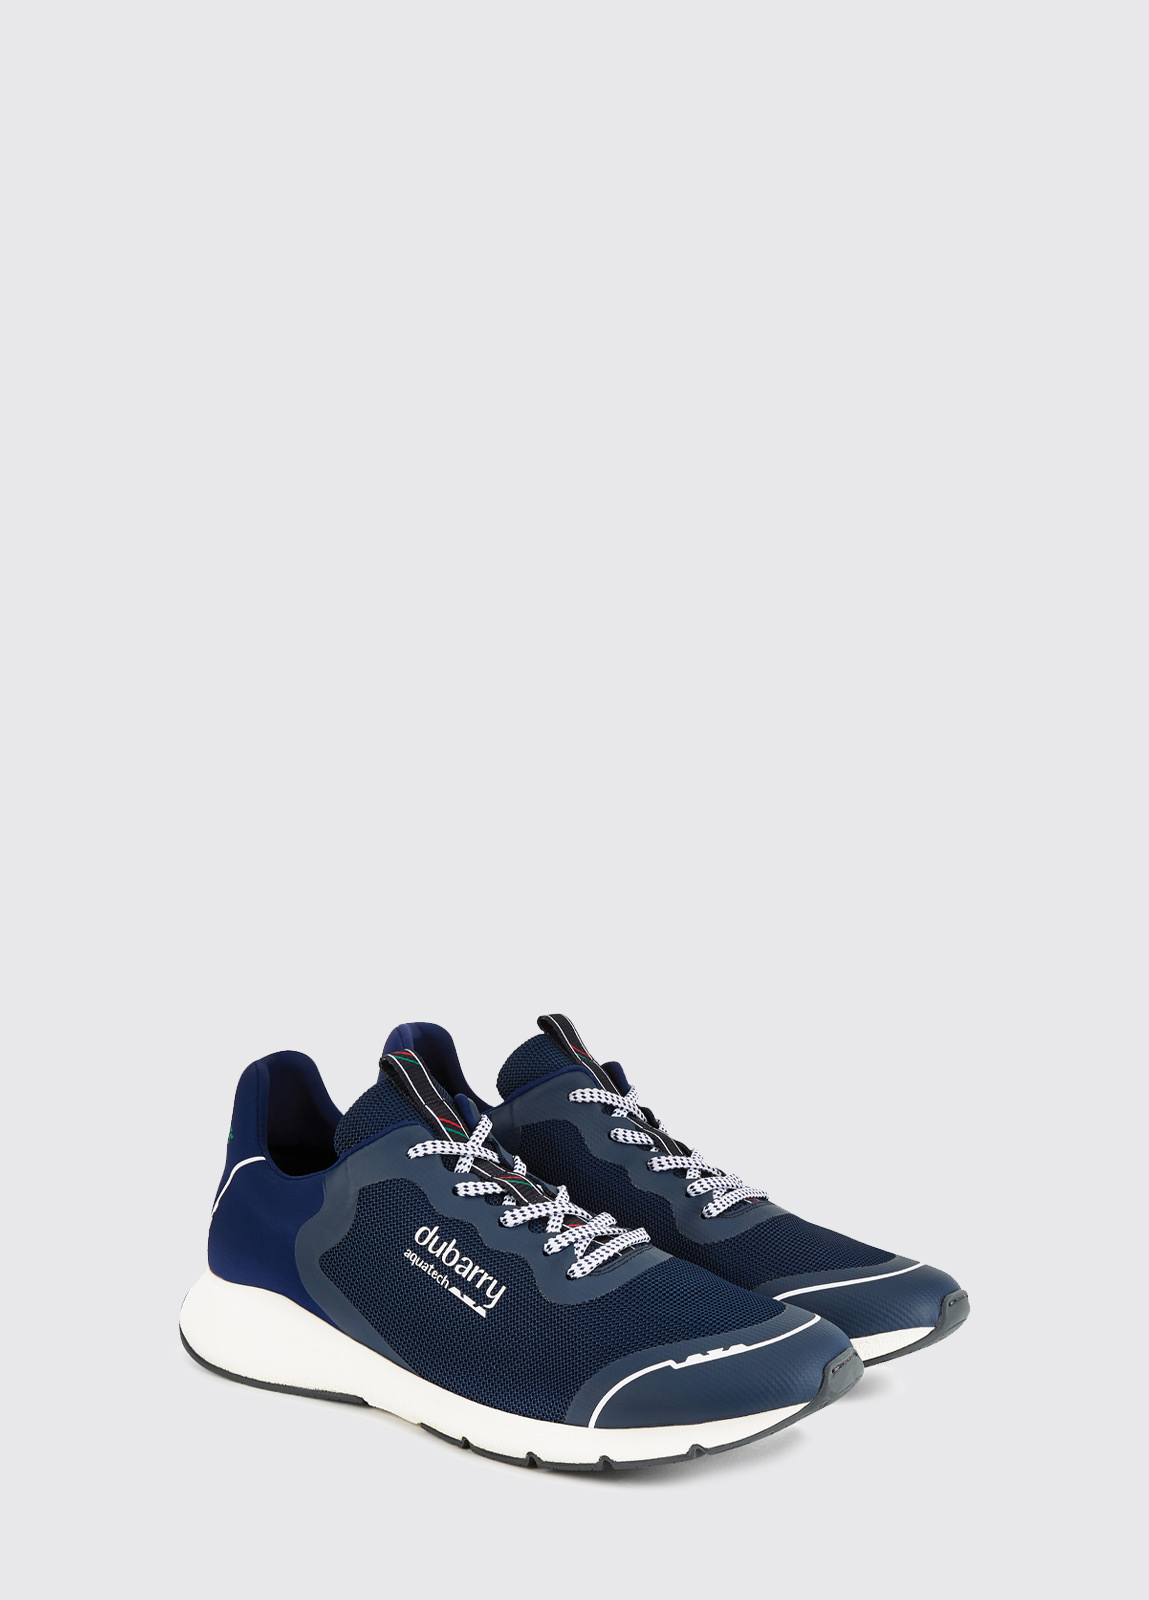 Palma Lightweight Laced Trainer - Navy